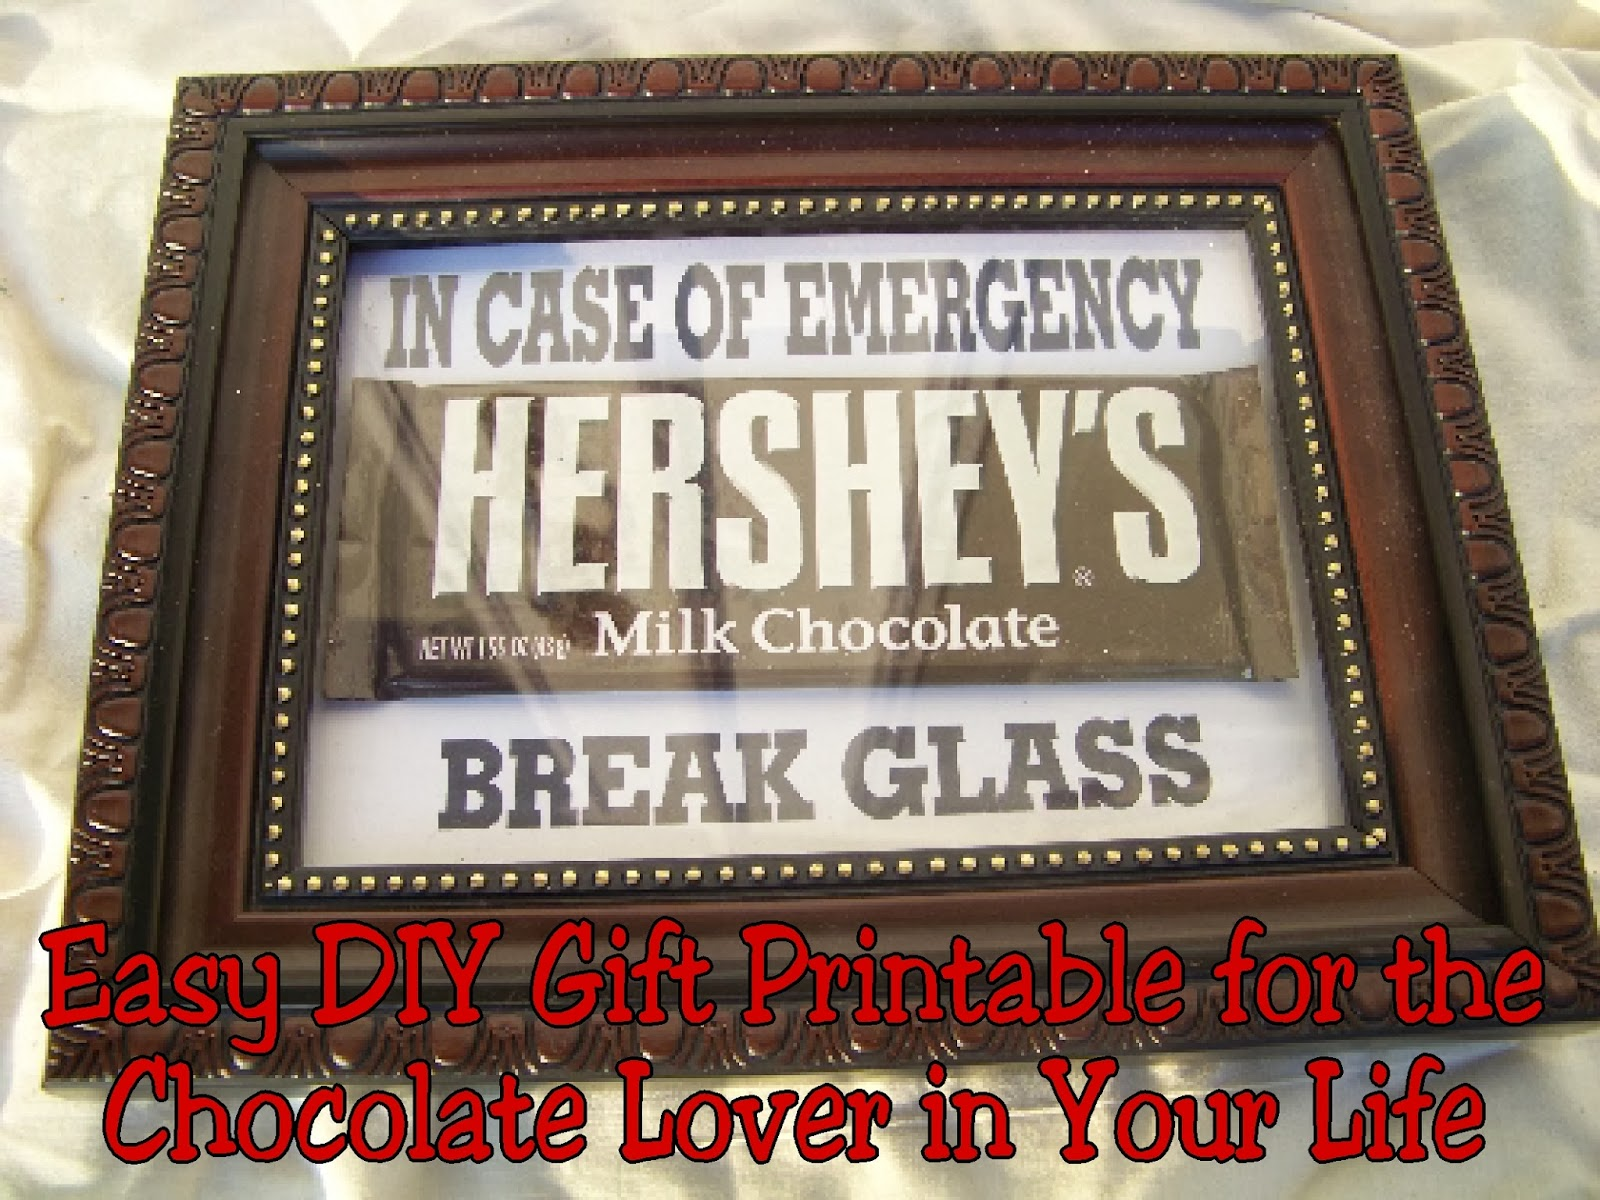 Easy DIY Gift Printable for the Chocolate Lover in Your Life